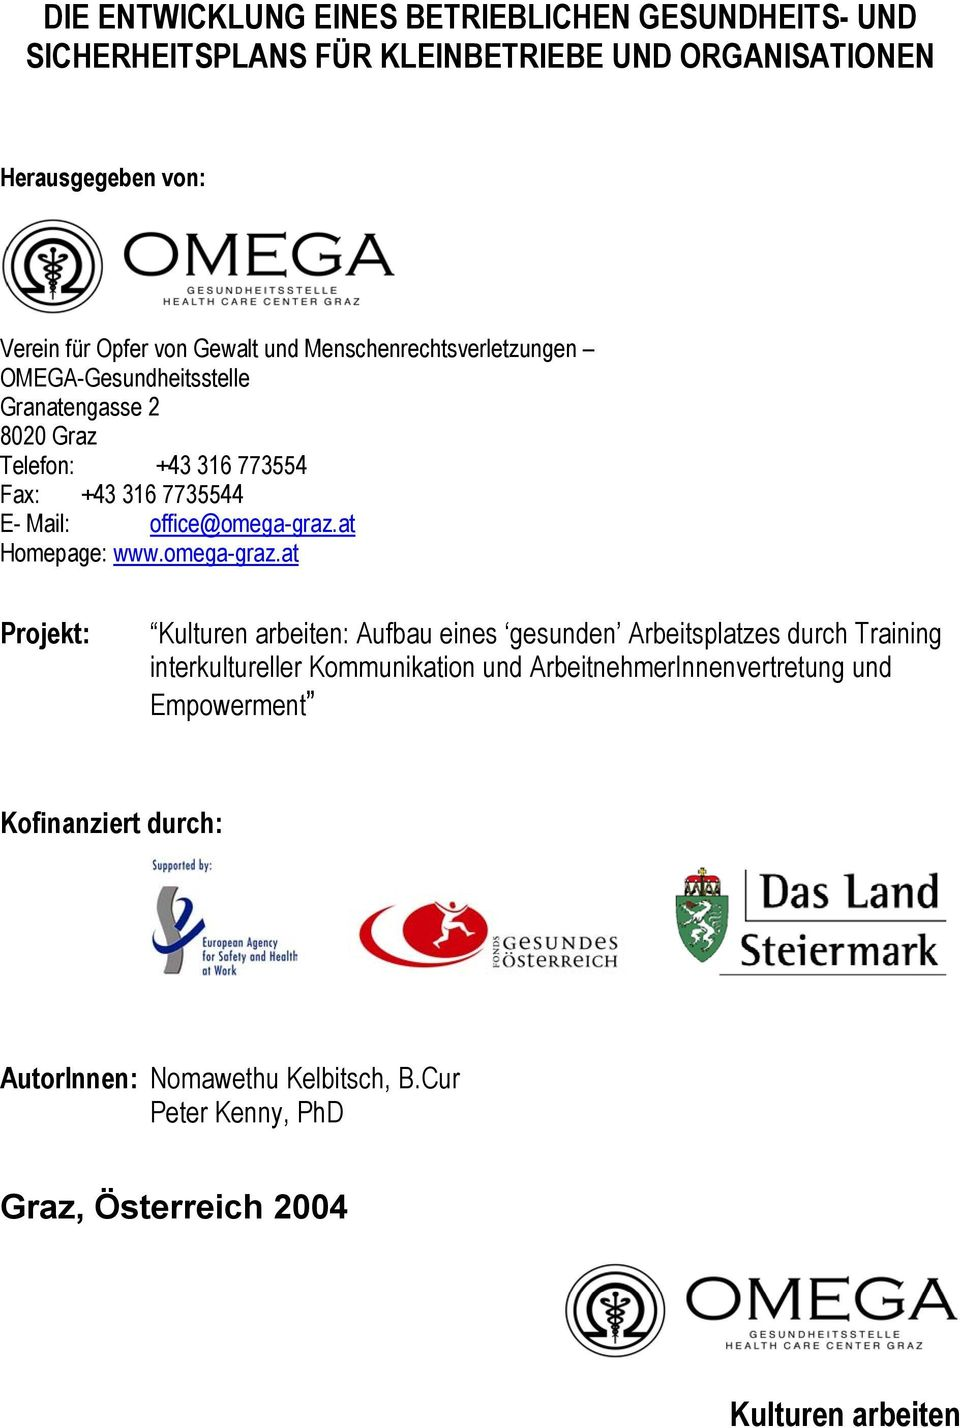 Ziemlich Aktionsplan Vorlage Wort Ideen - Entry Level Resume ...